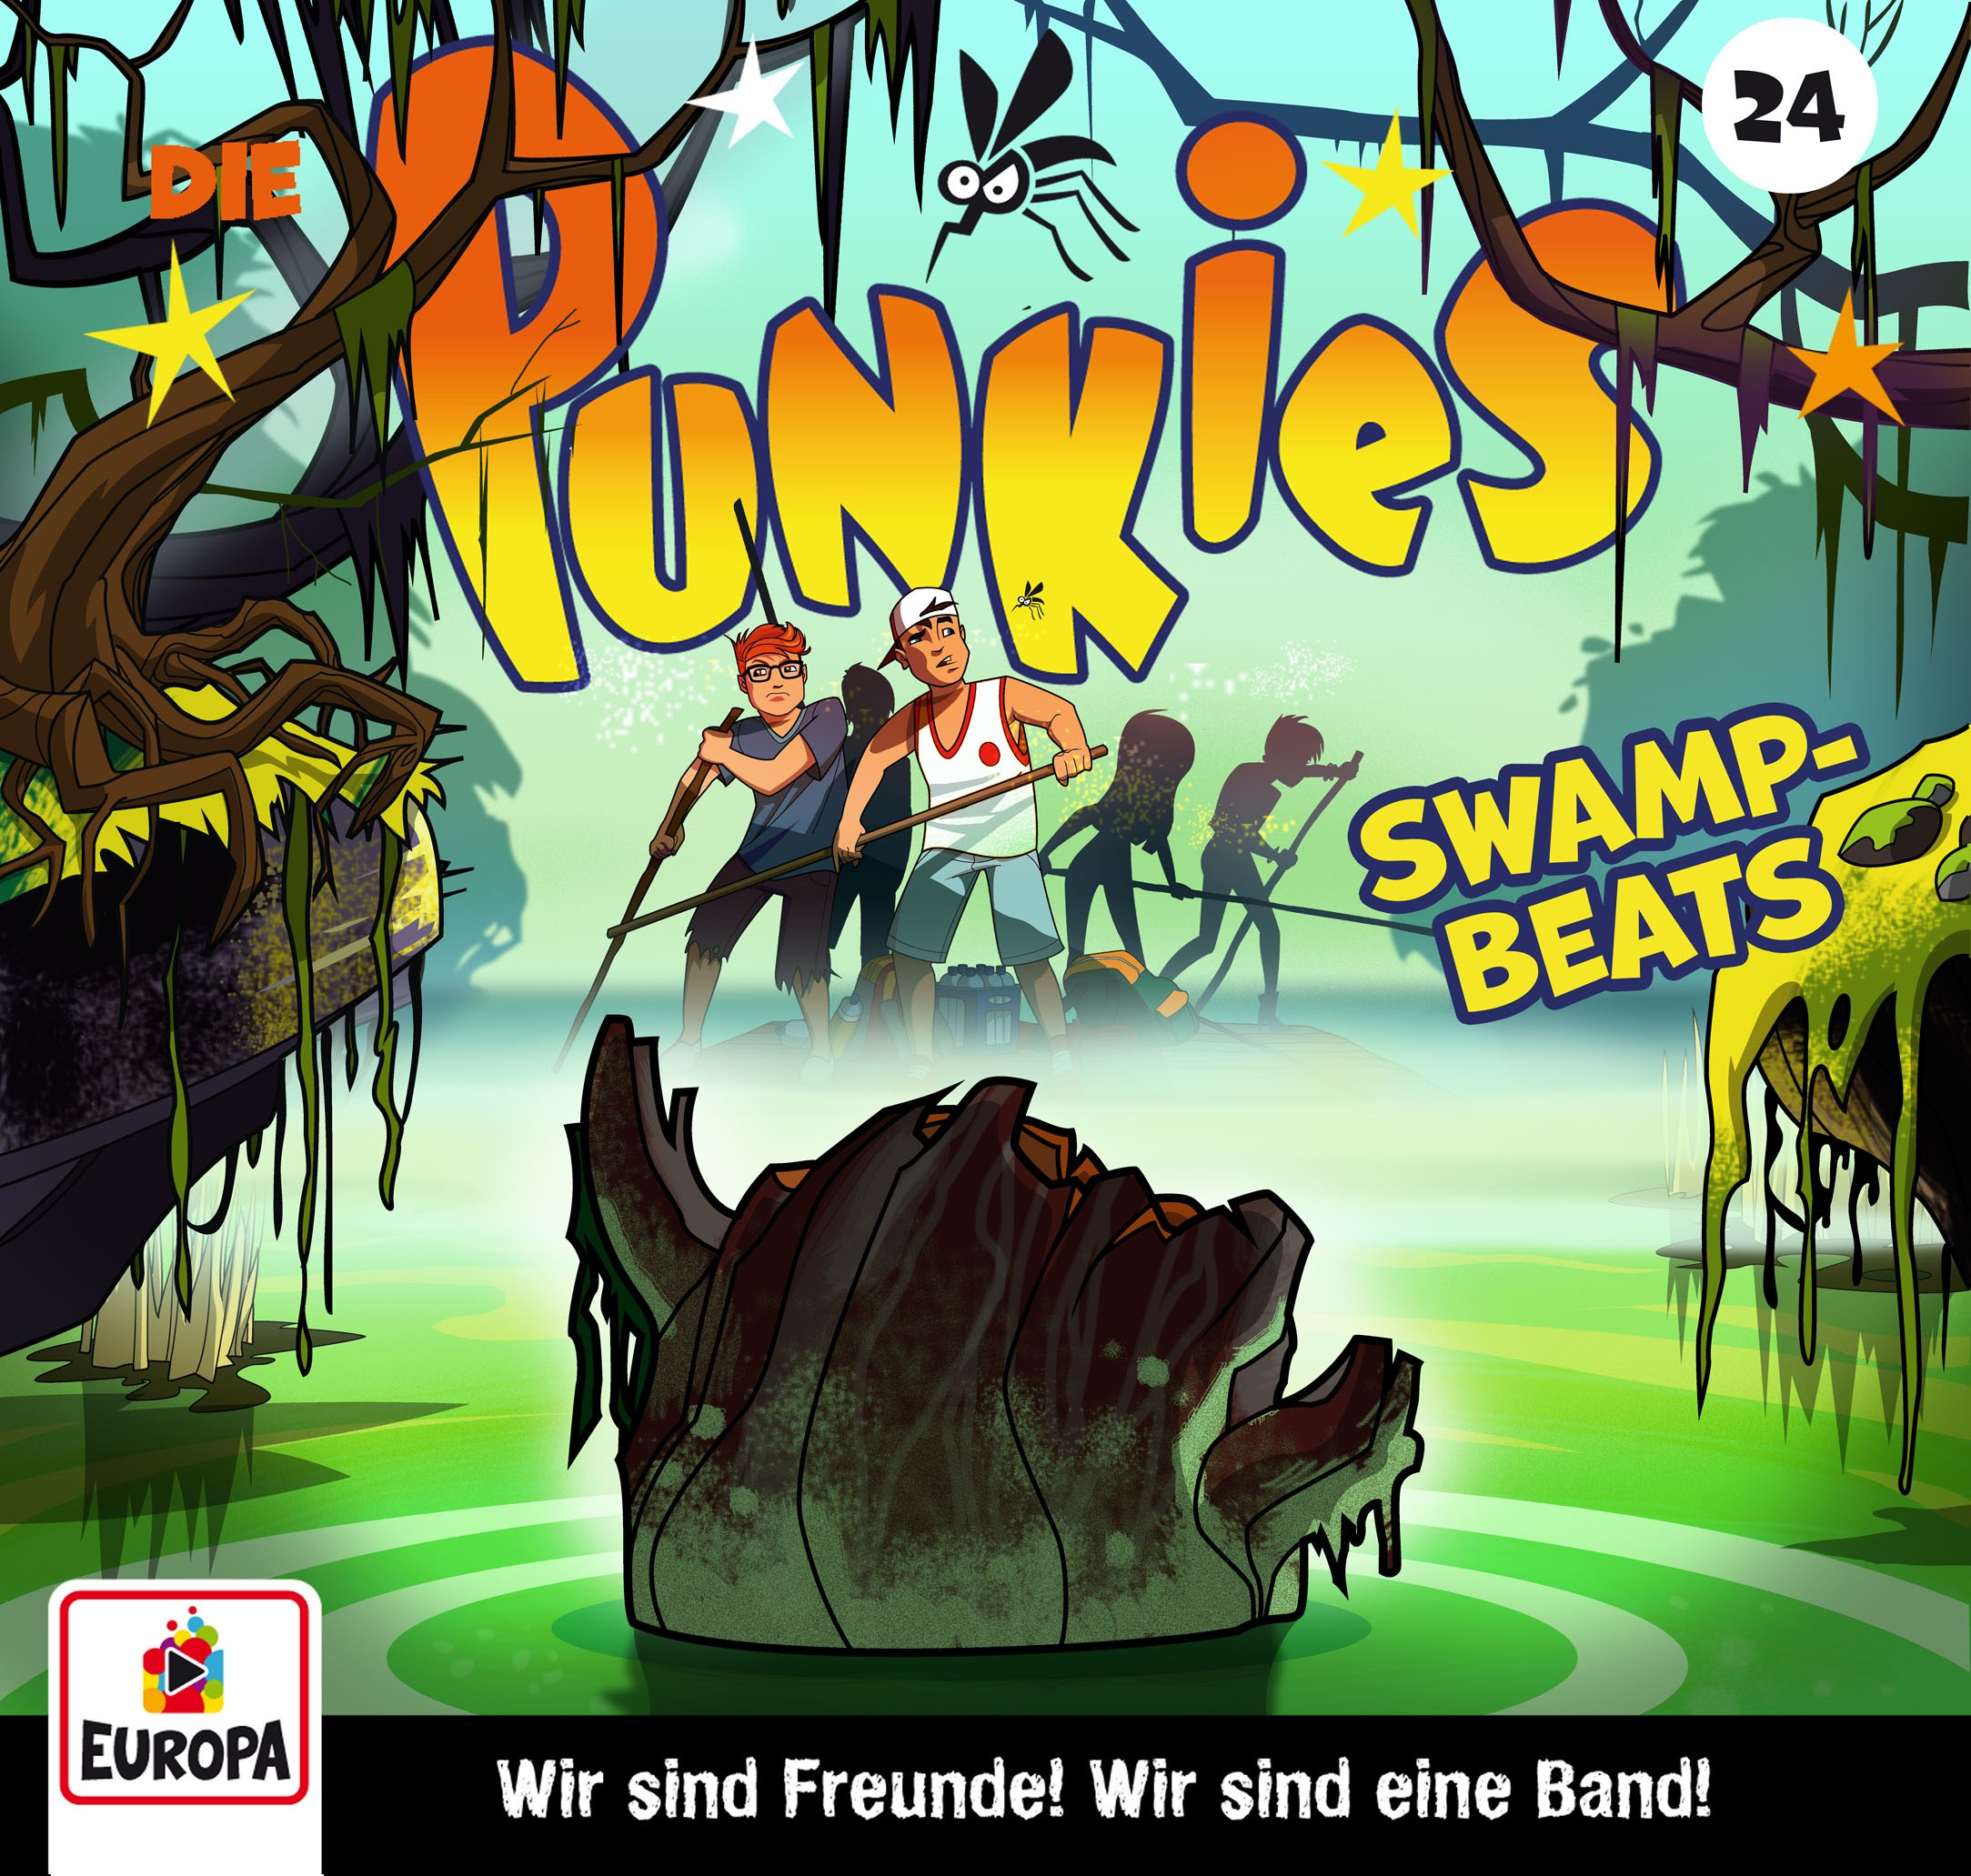 Die Punkies : Swamp Beats!